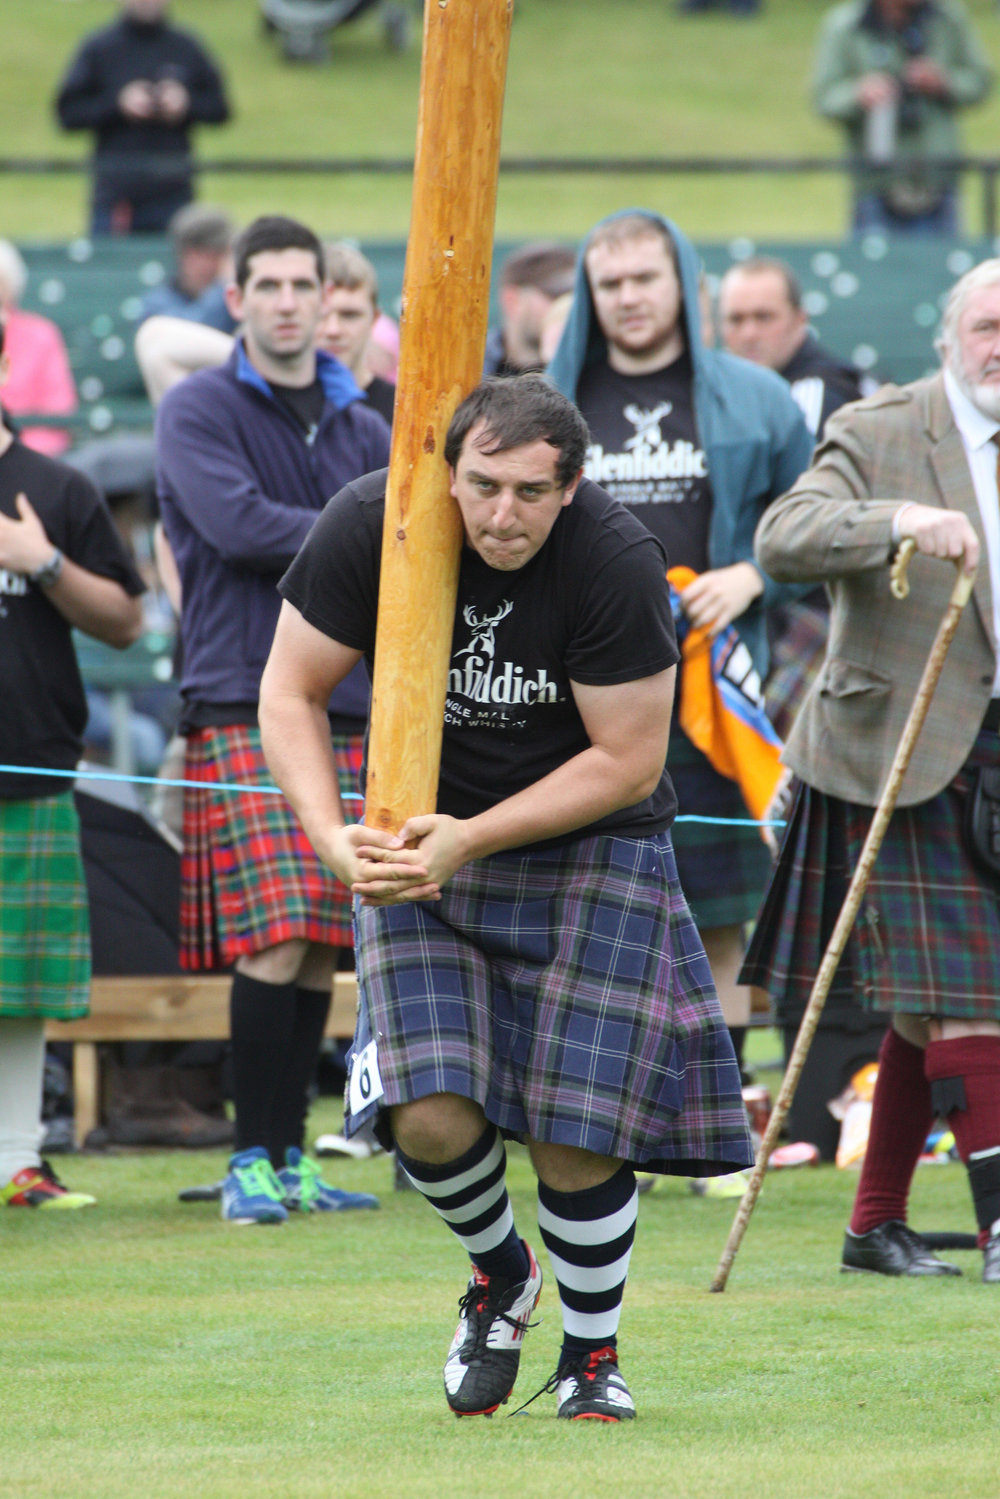 (Top) The Caber Toss at The Braemar Gathering. Photo from: The Braemar Gathering (Left) Throwing the hammer at The Braemar Gathering.